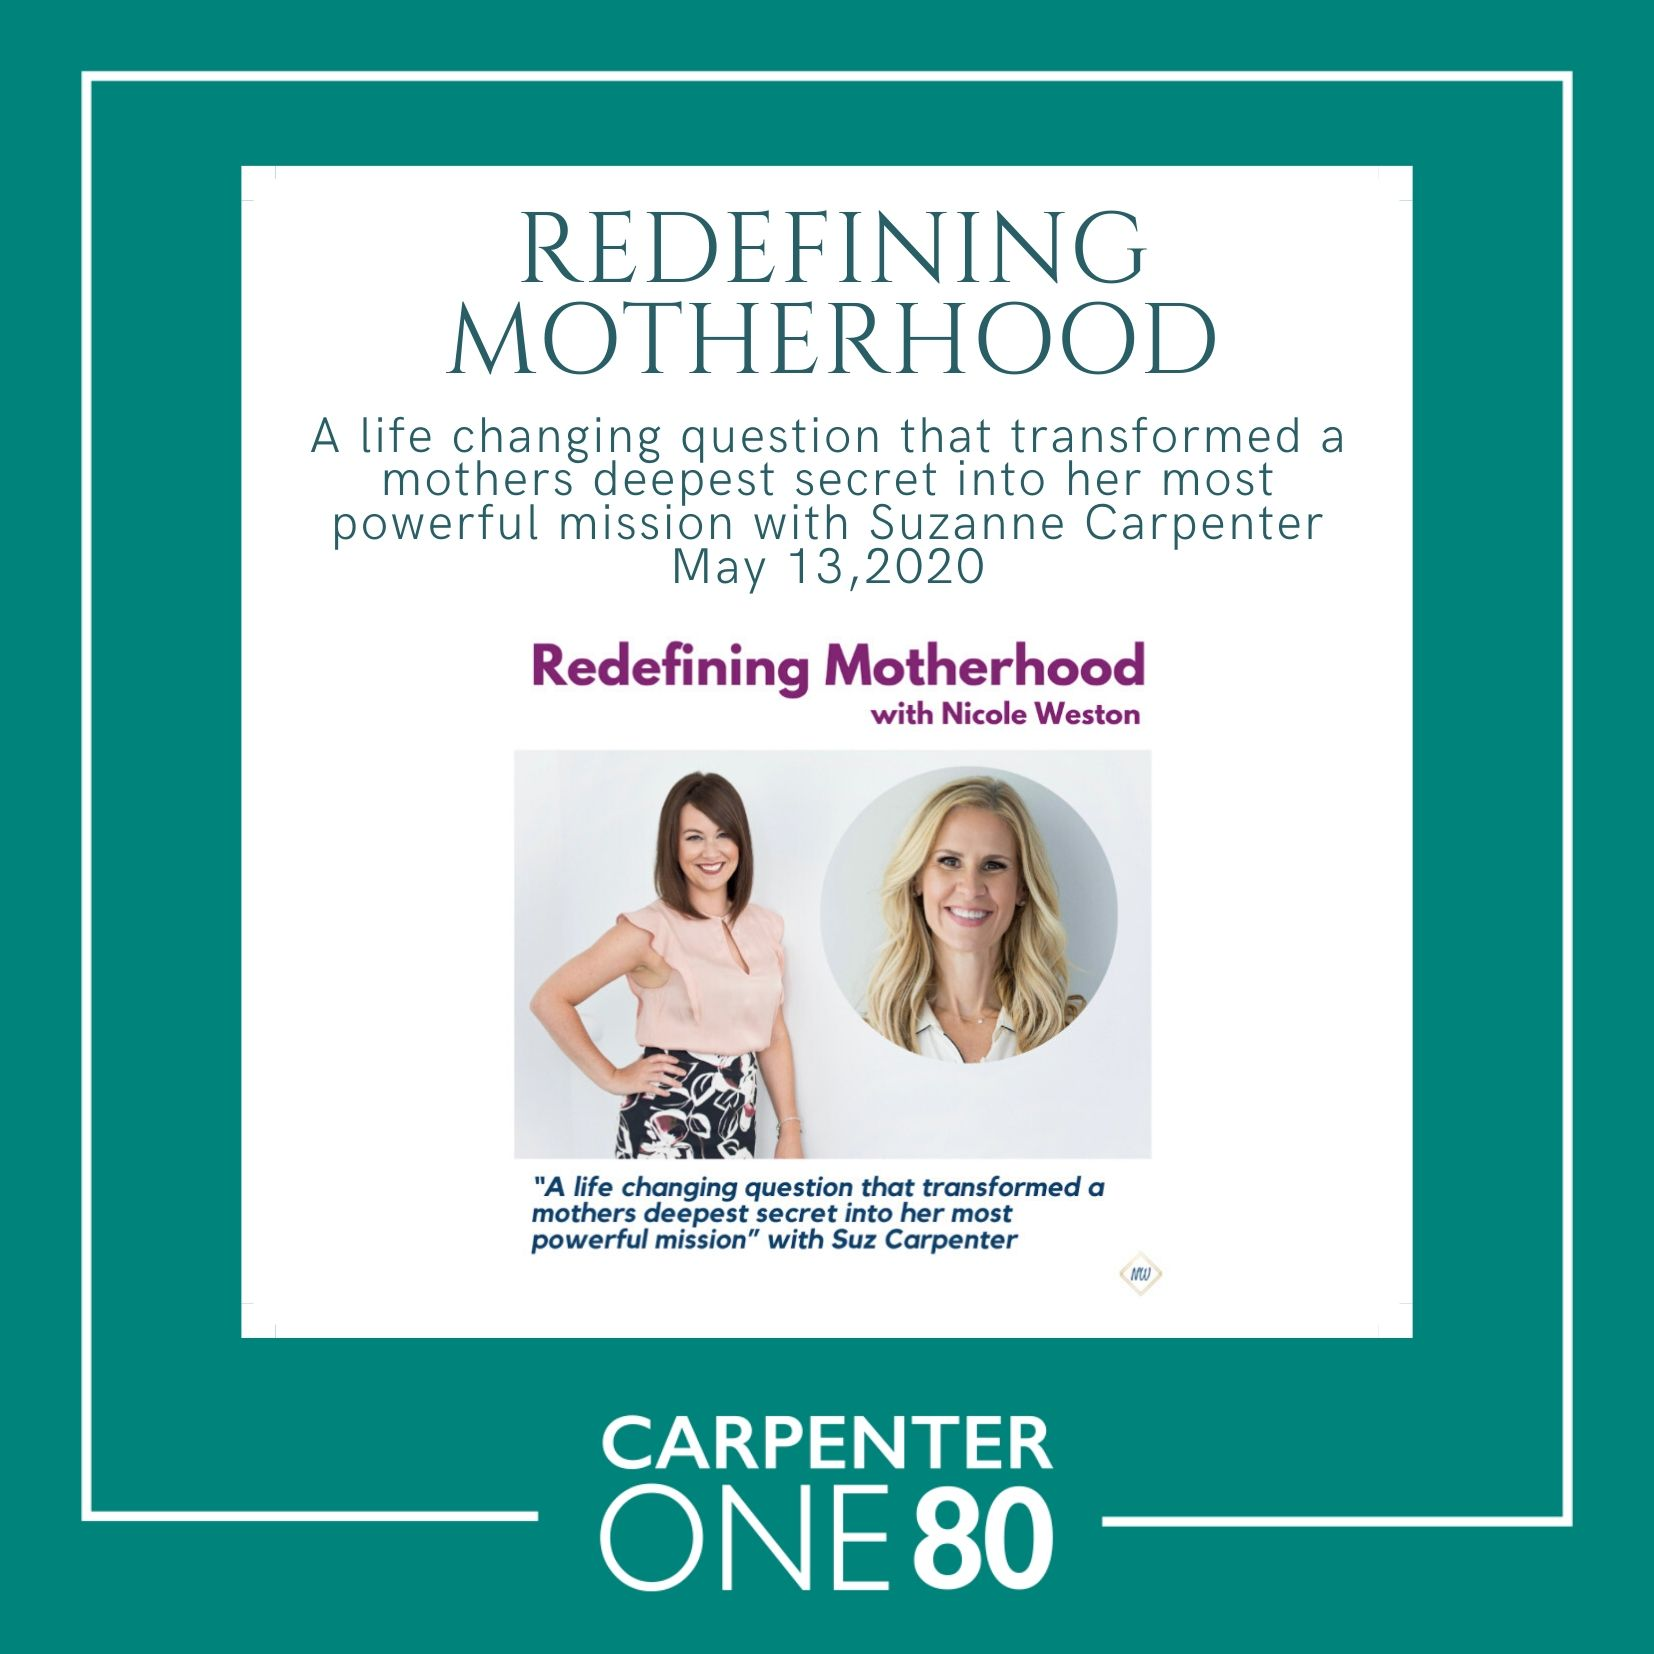 Redefining Motherhood tile